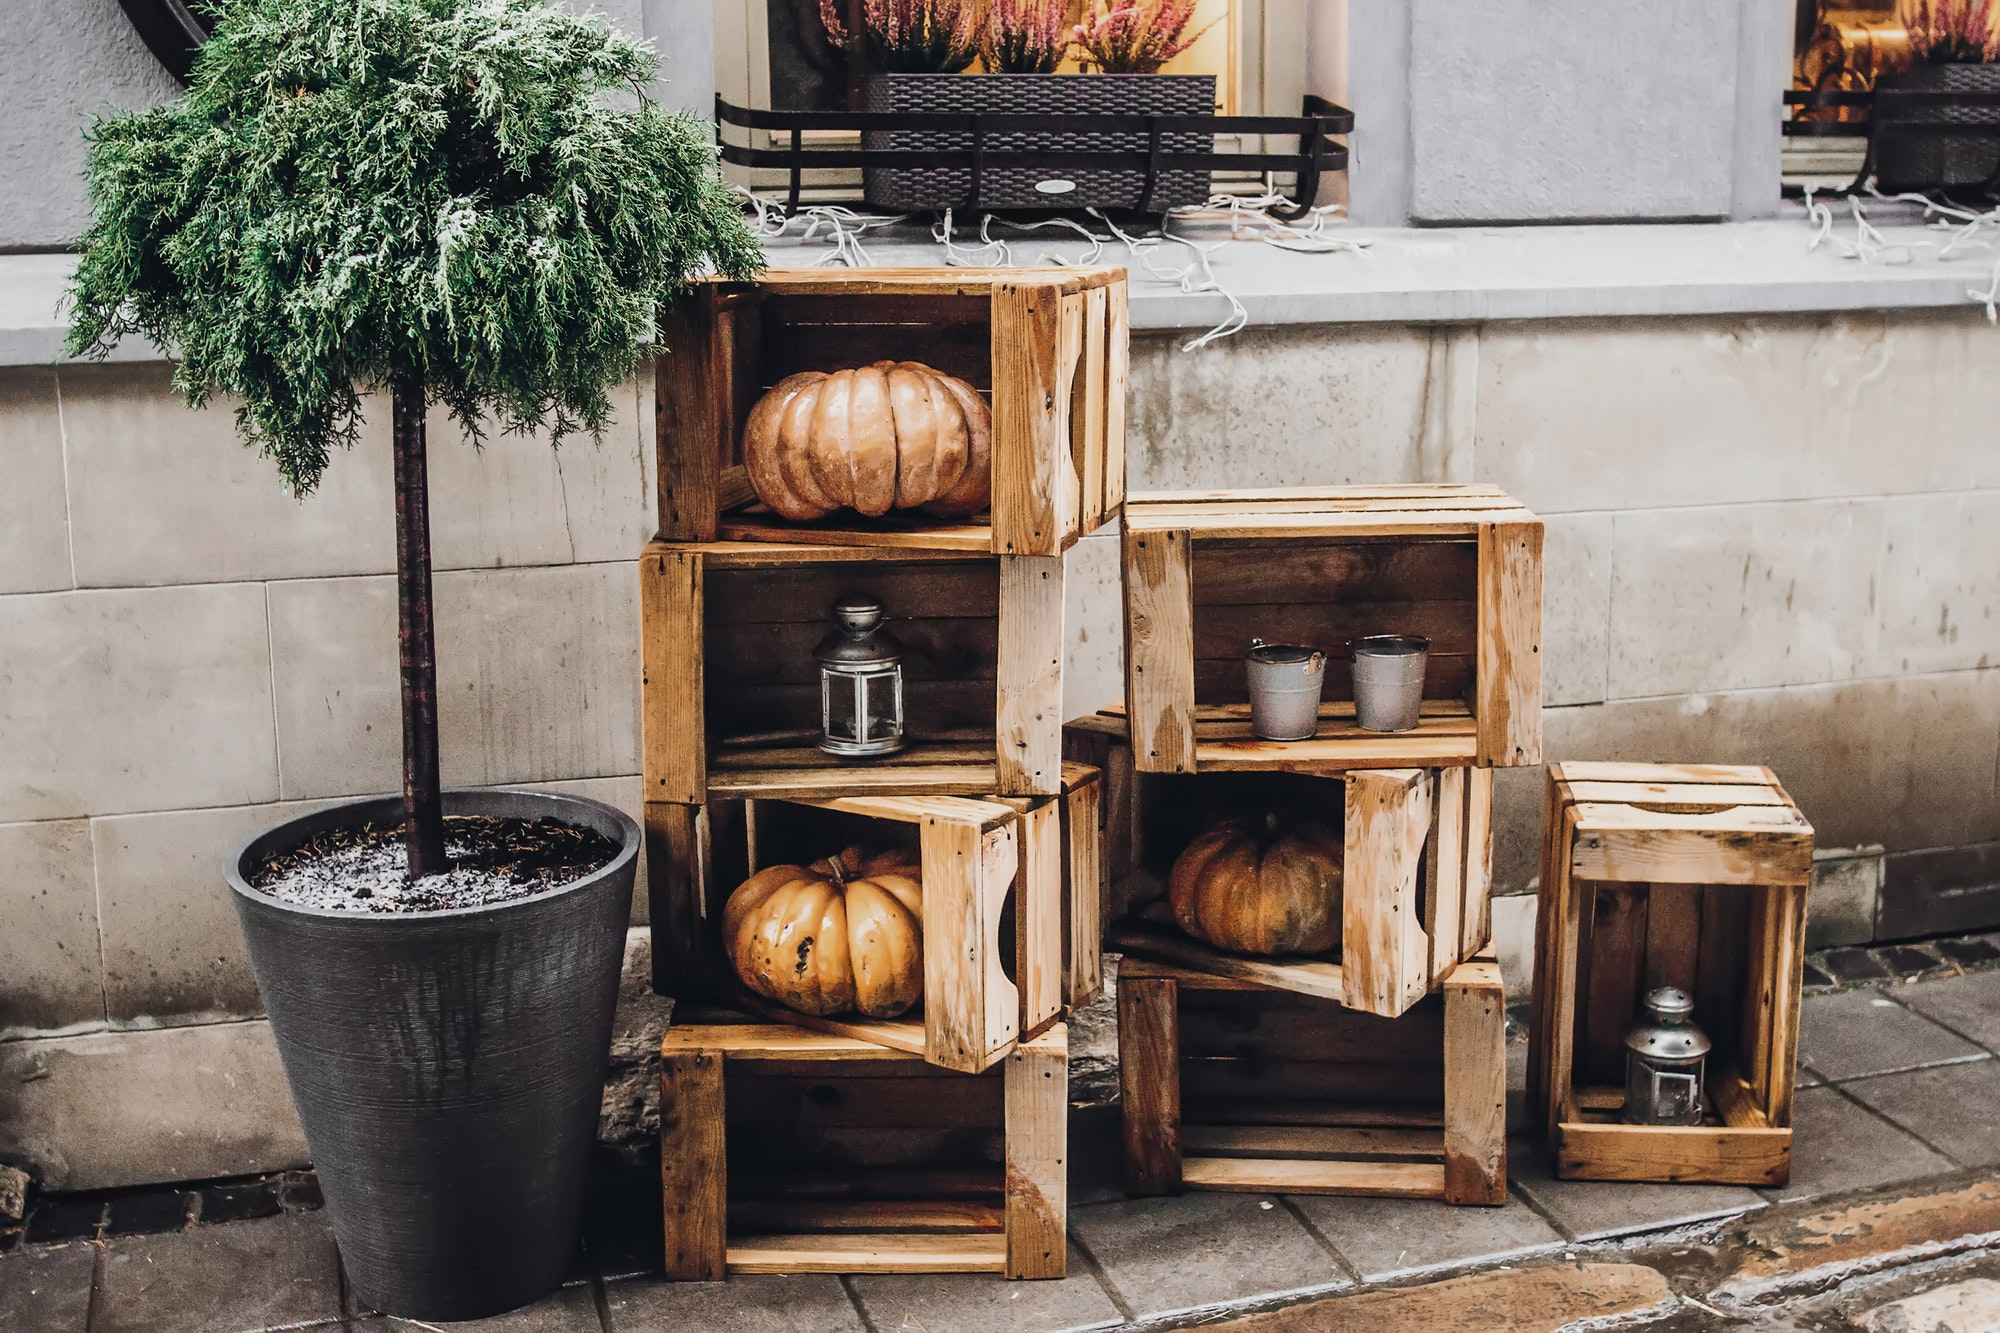 rustic decoration with pumpkins and lanterns in wooden boxes